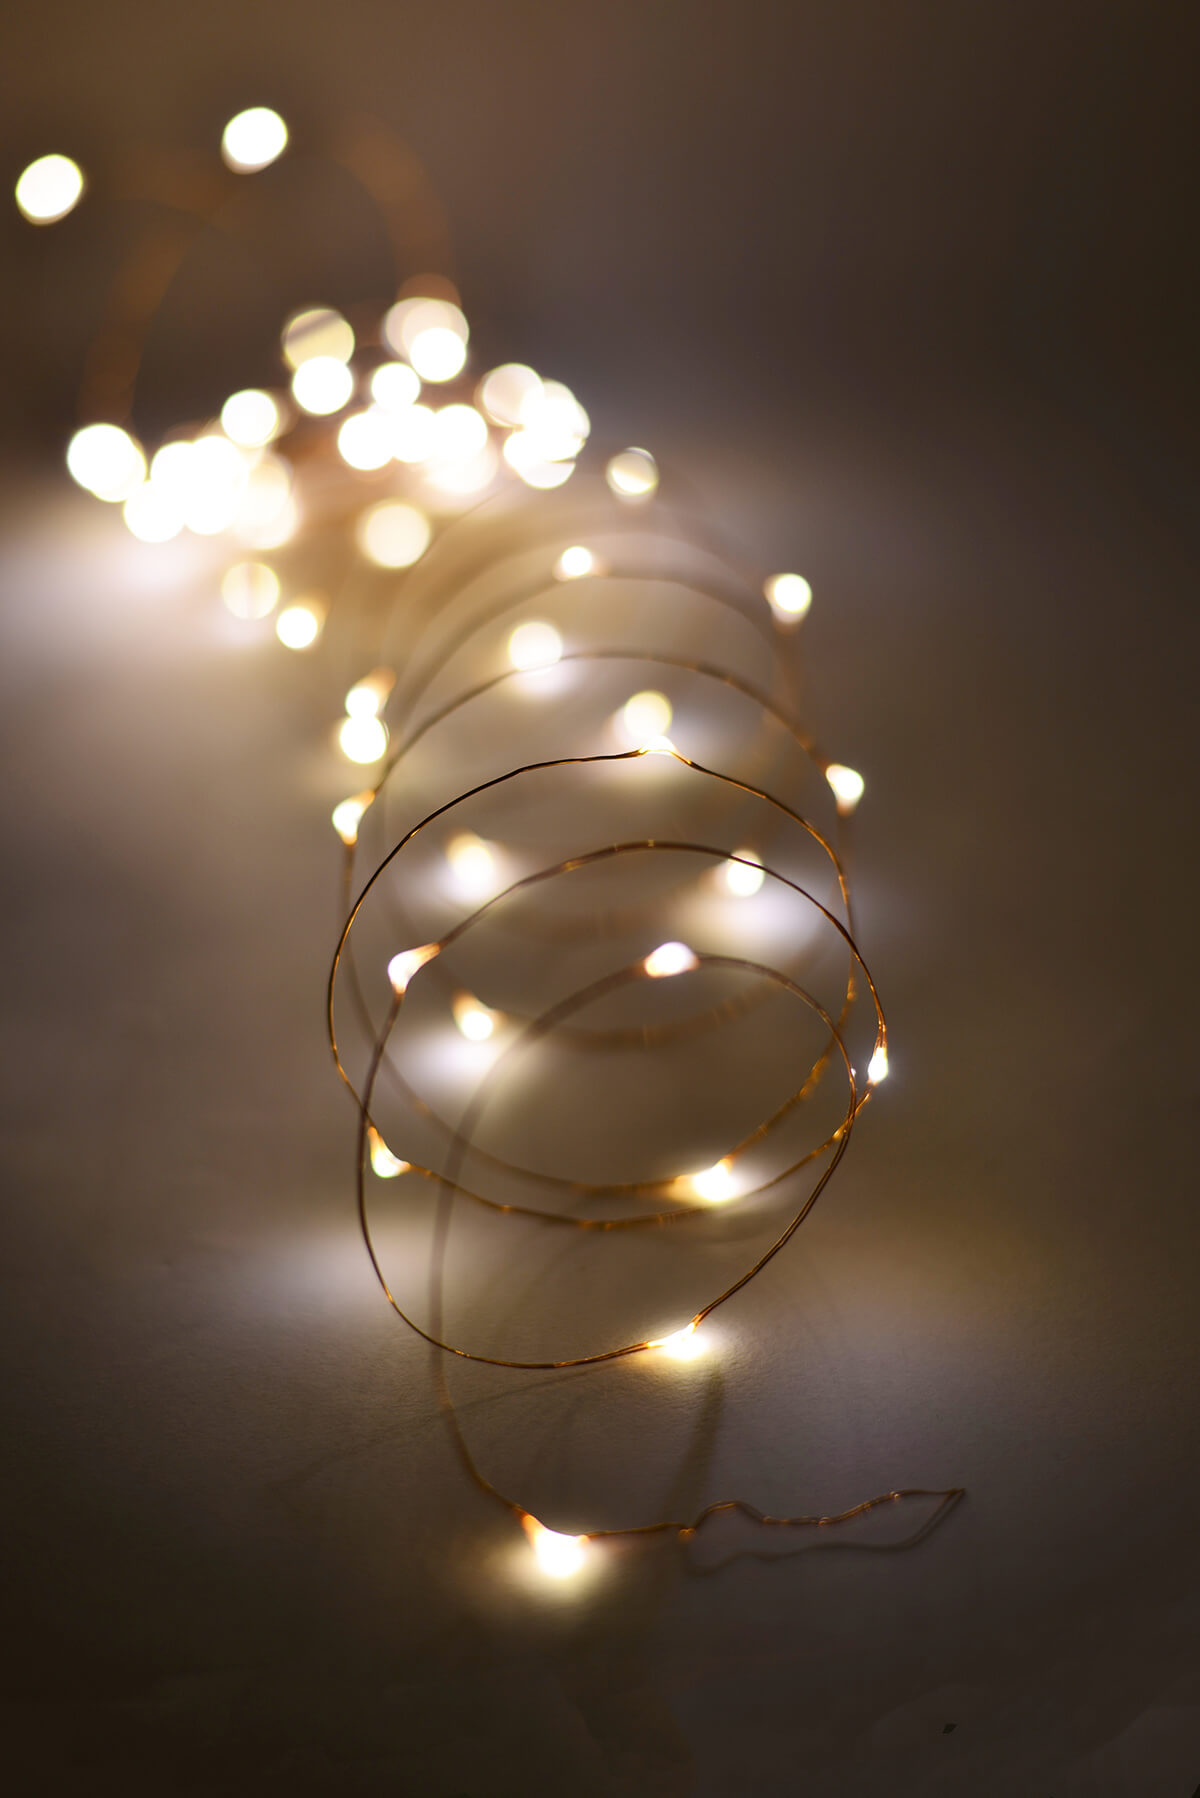 Fairy lights led strings party lights lighted branches outdoor fairy lights 20 ft battery op 60 warm white led light strings copper wire aloadofball Image collections